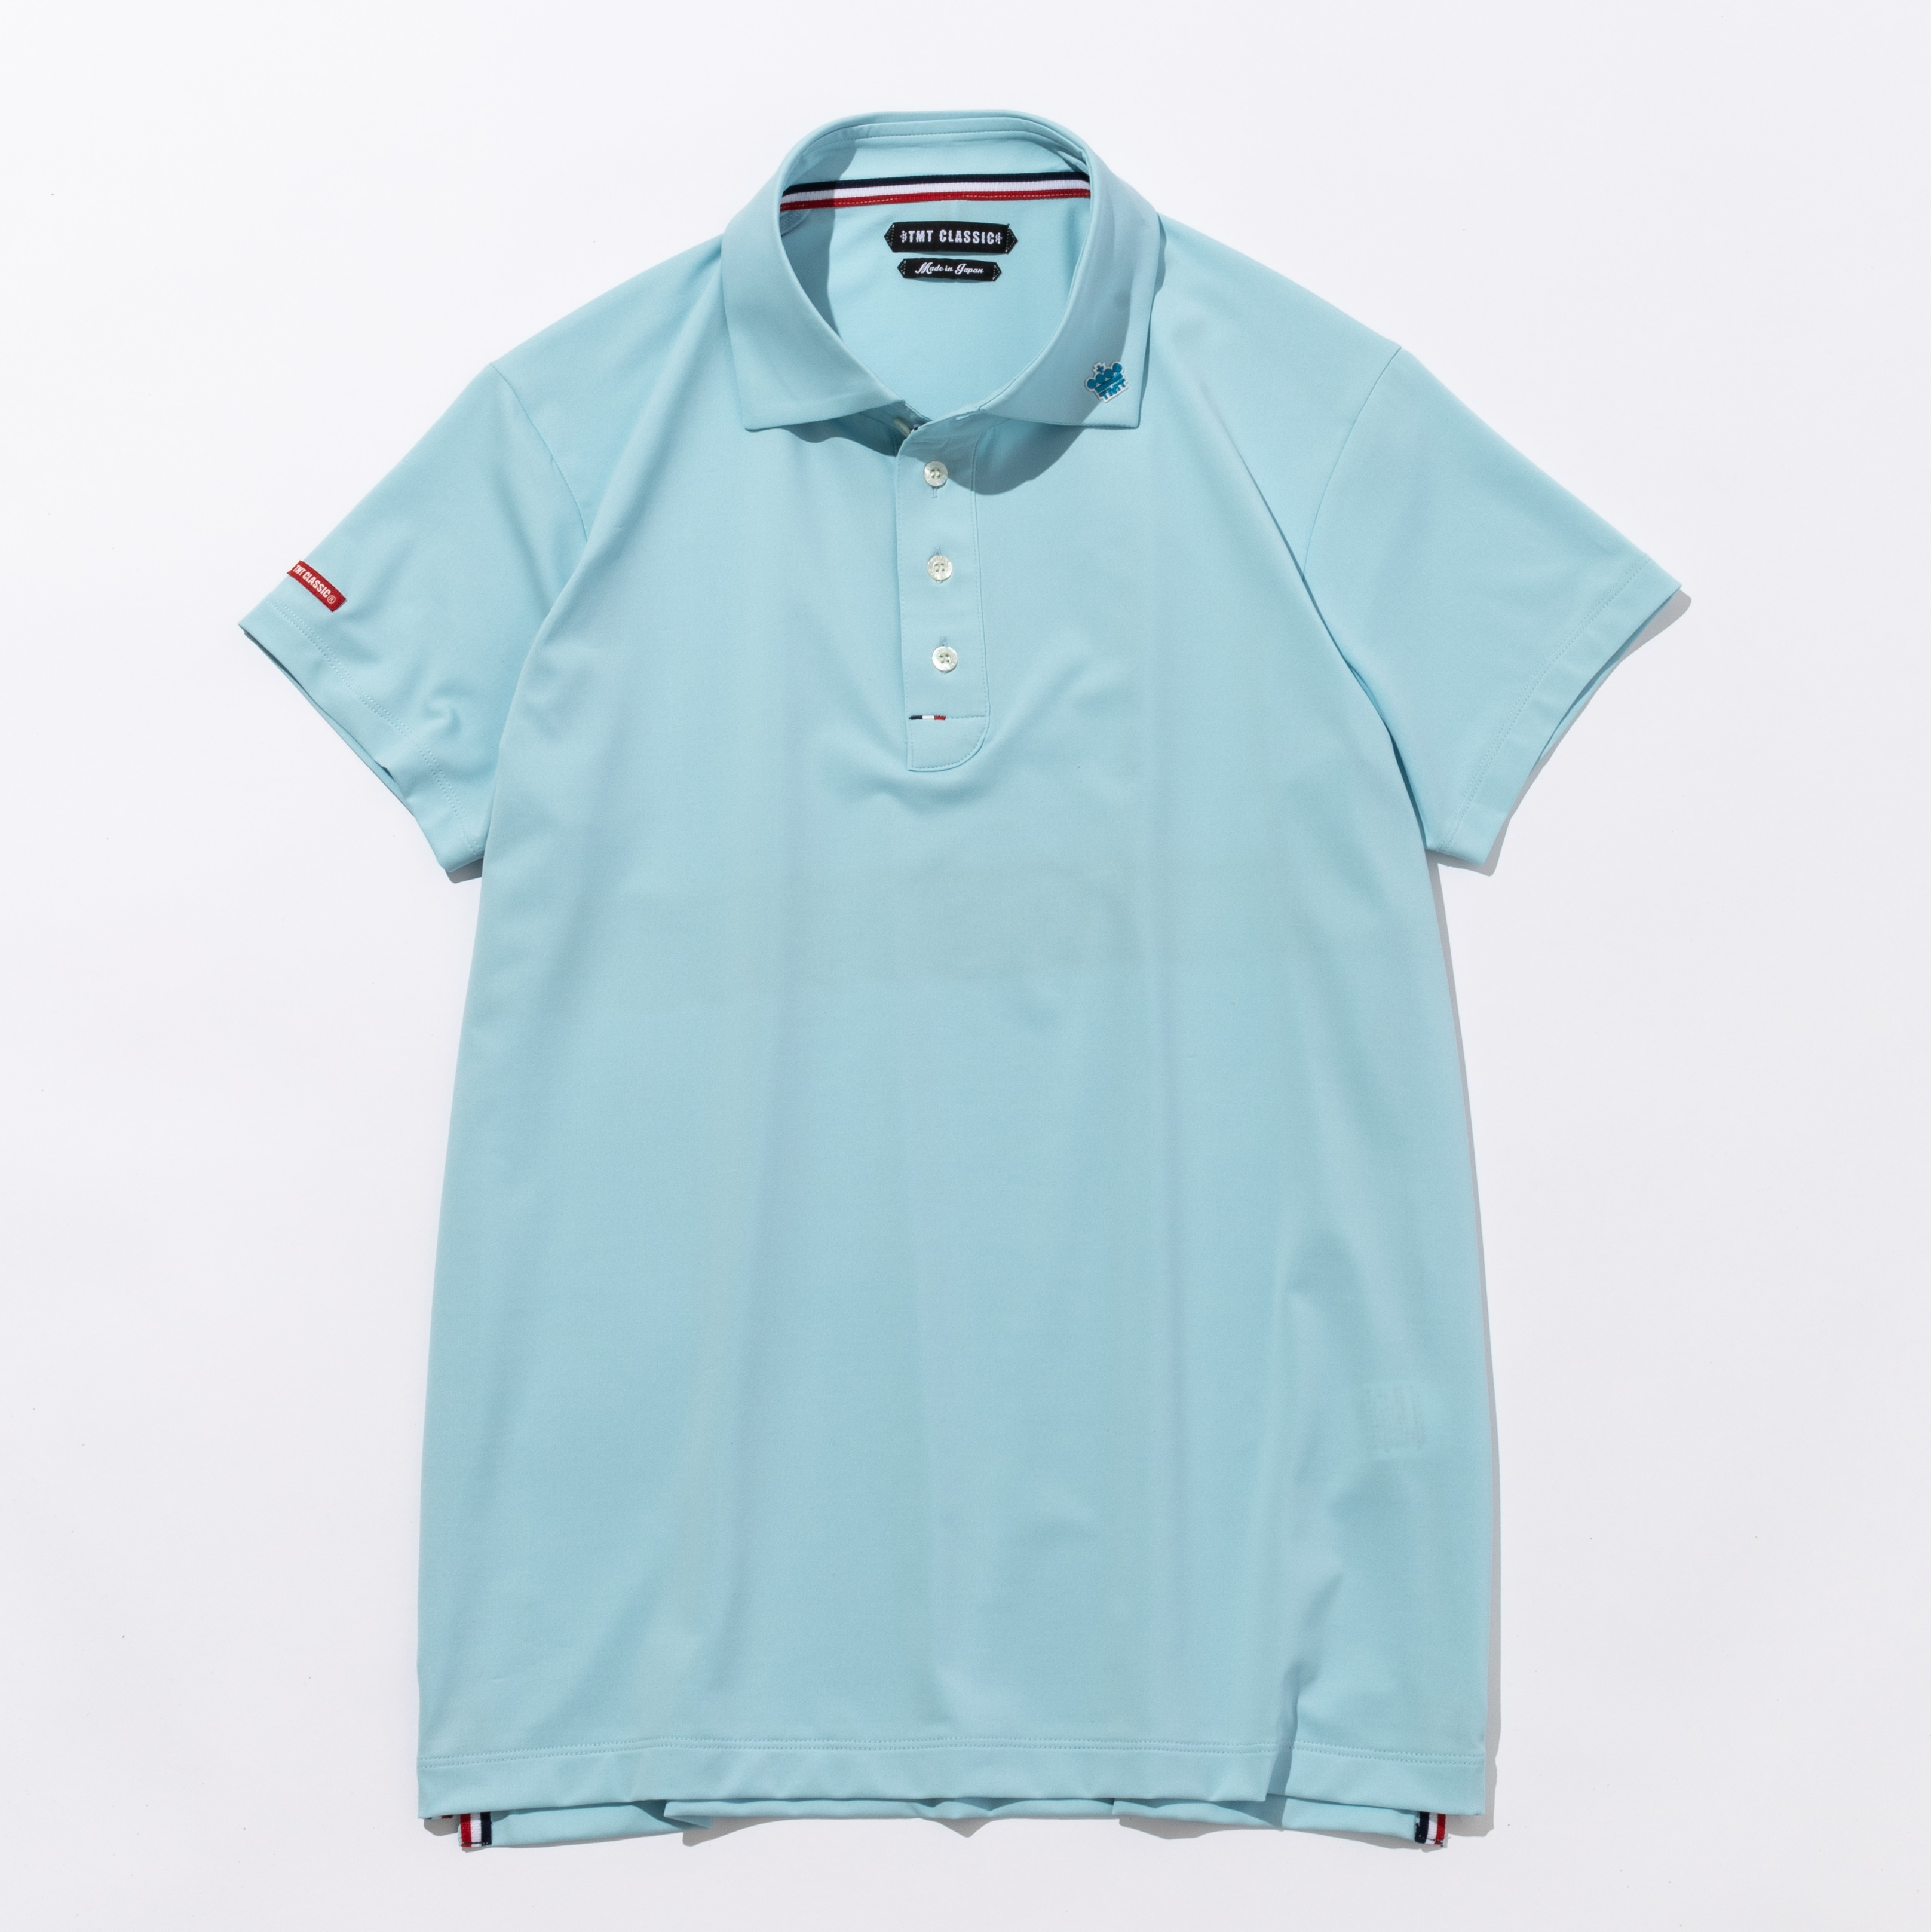 TMT Classic FUNCTIONAL STRETCH JERSEY POLO SHIRT サックスブルー